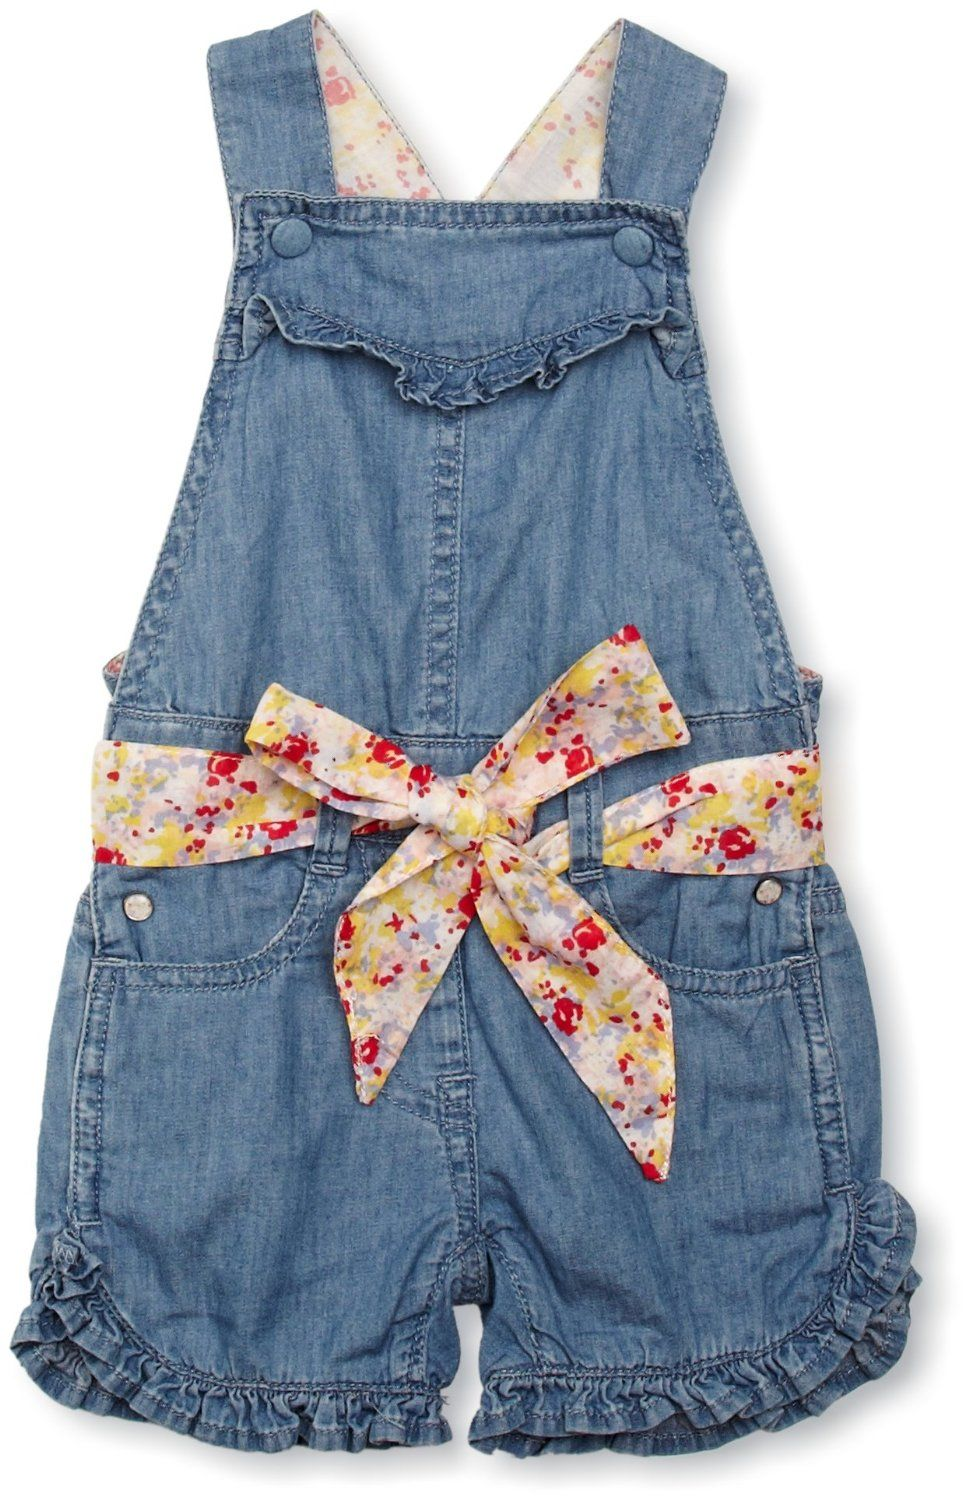 870643d4c209 Silvian Heach Kareem Baby Girl s Dungarees Denim 9-12 Months  Amazon.co.uk   Clothing